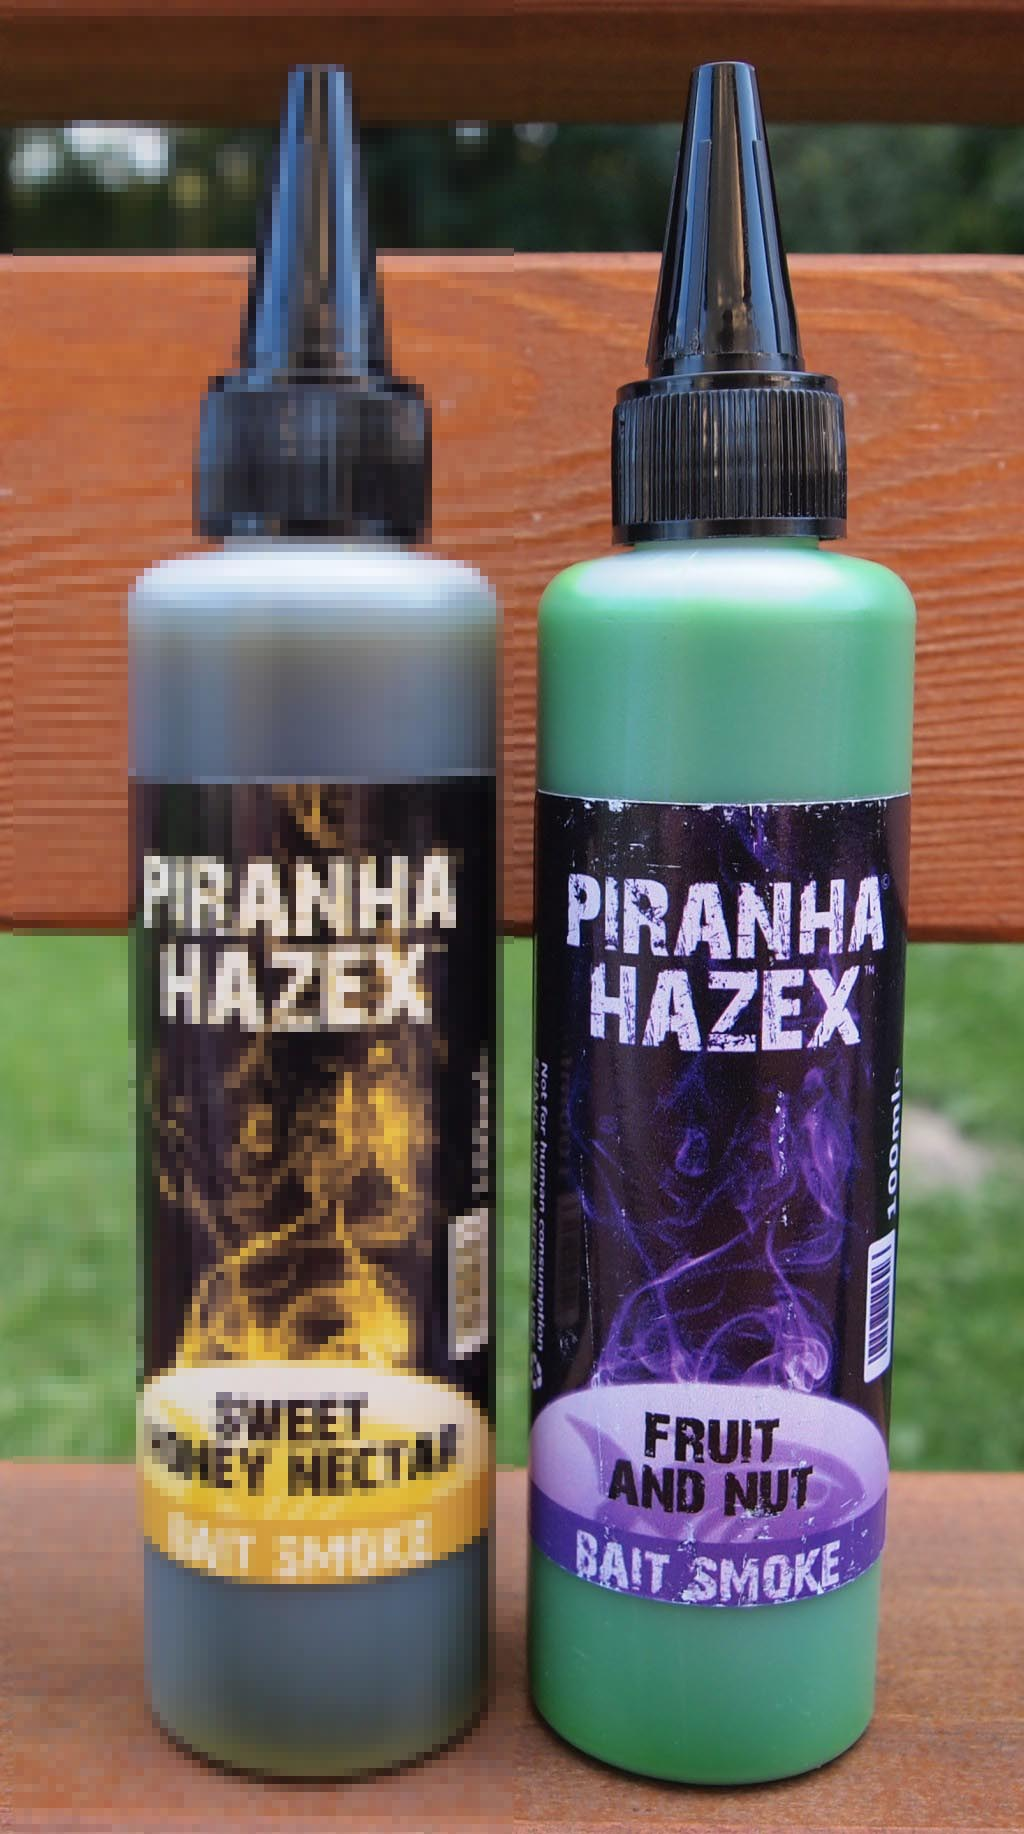 PIRANHA HAZEX FRUIT AND NUT